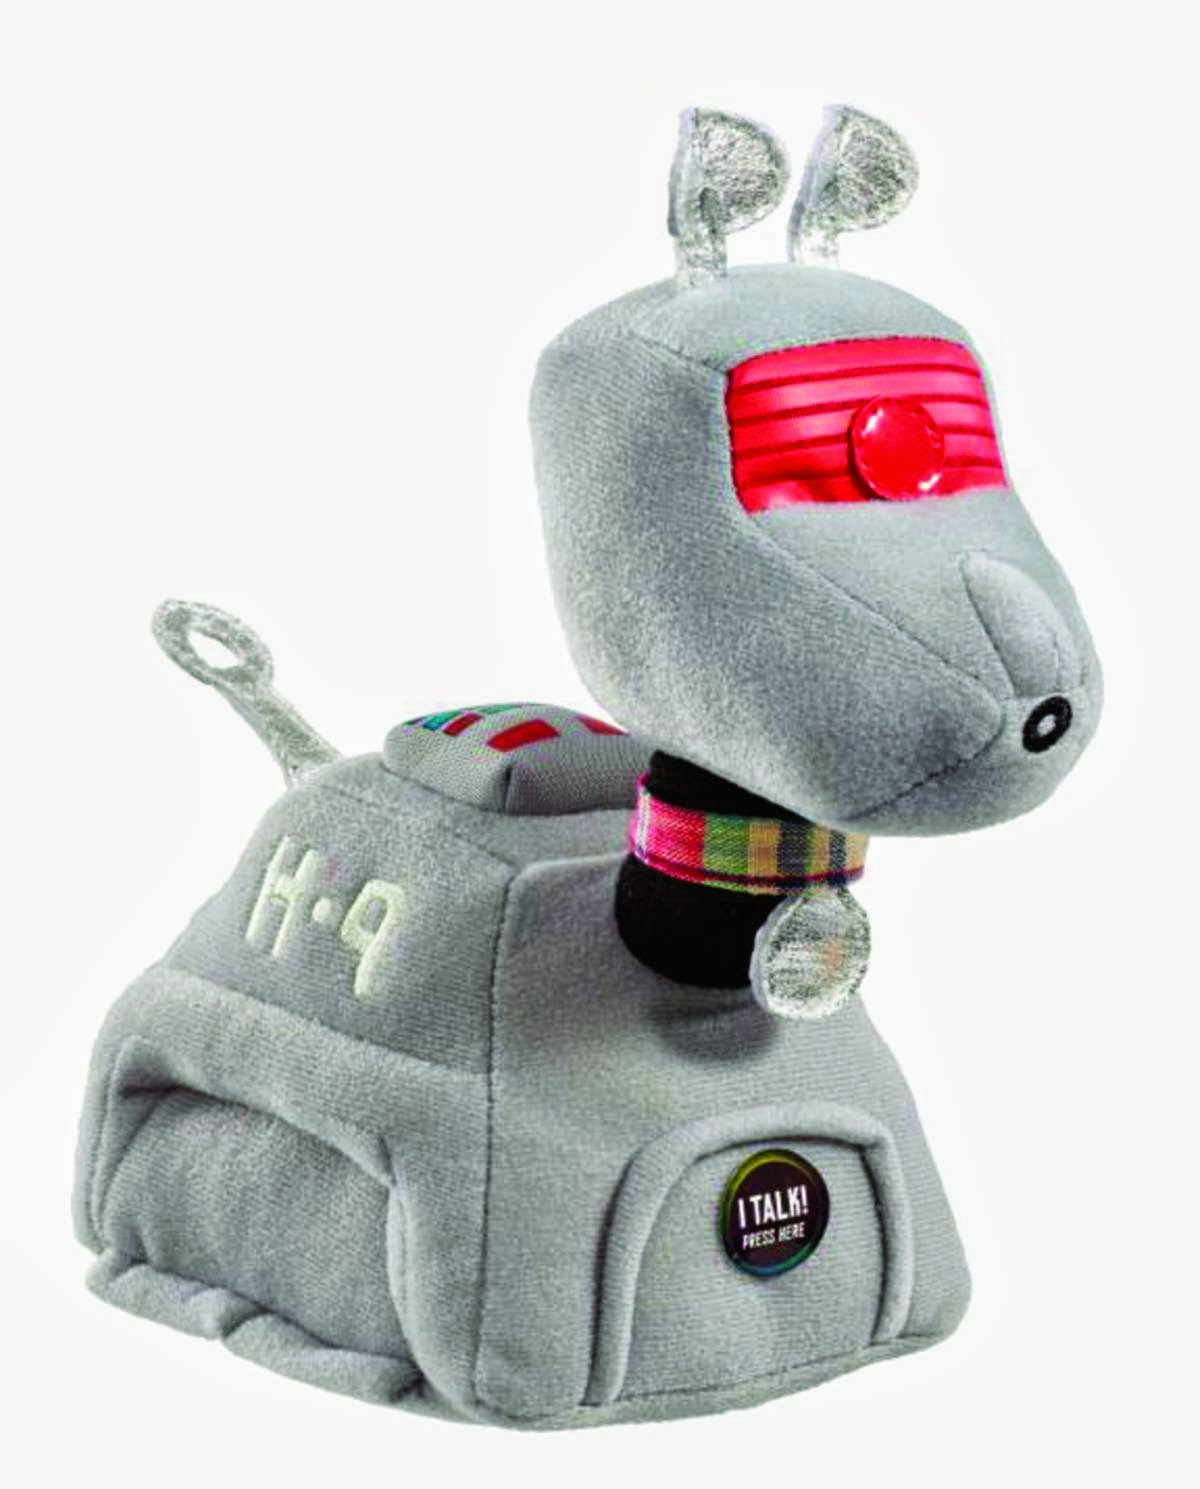 The Previews Exclusive Doctor Who K9 Talking Plush